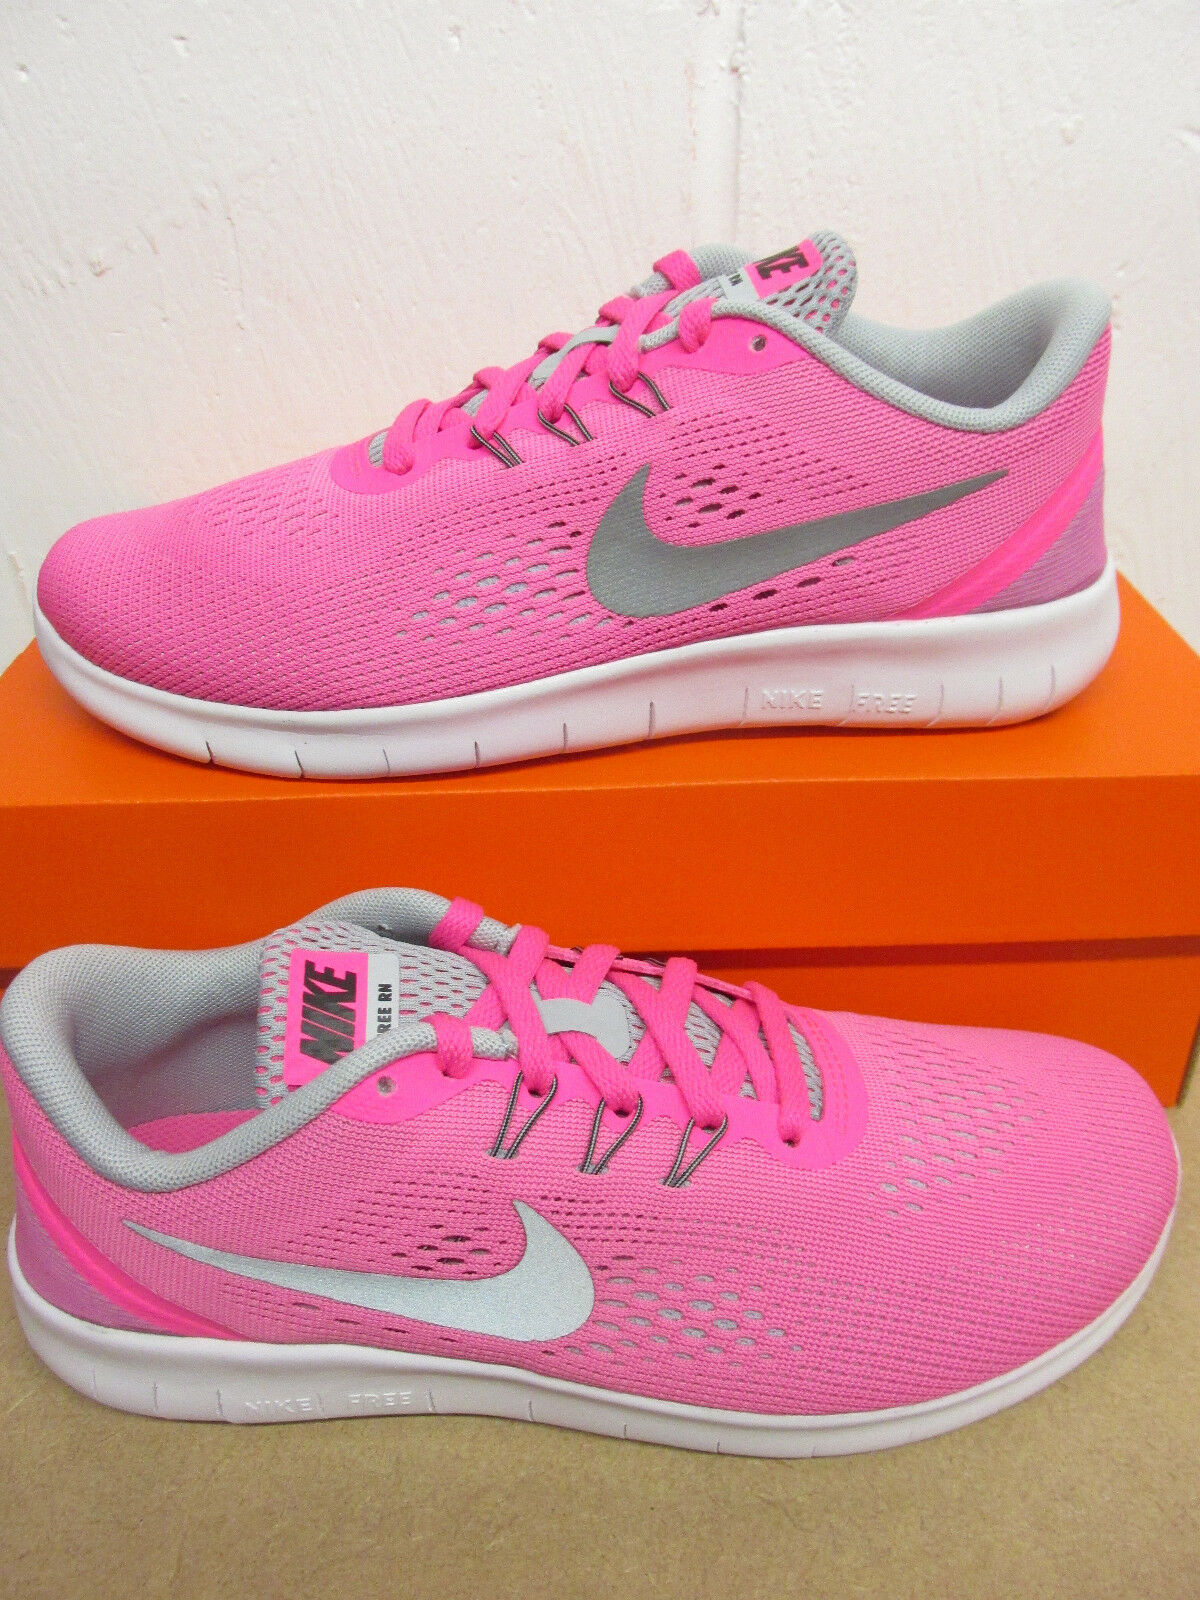 Nike Free RN (GS) Running Trainers 833993 833993 833993 600 Baskets Chaussures c3676f